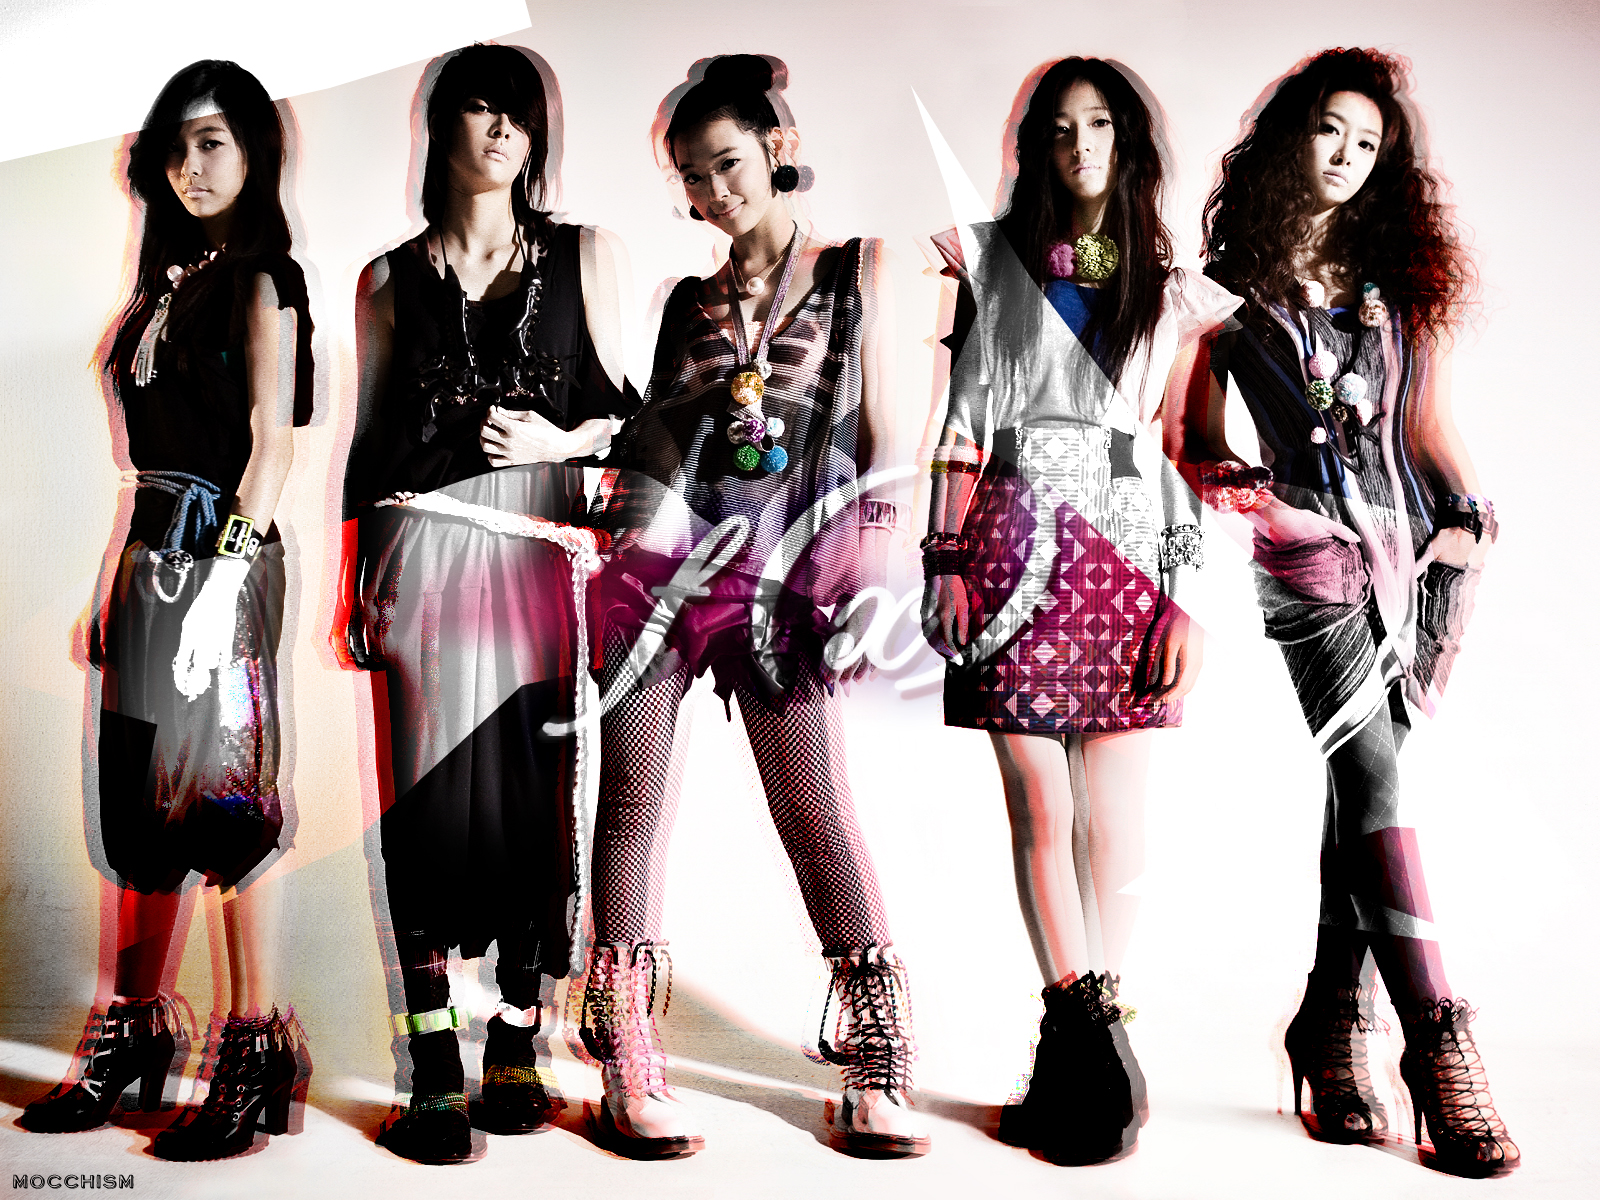 f(x) ☆ - F(x) Wallpaper (35120583) - Fanpop